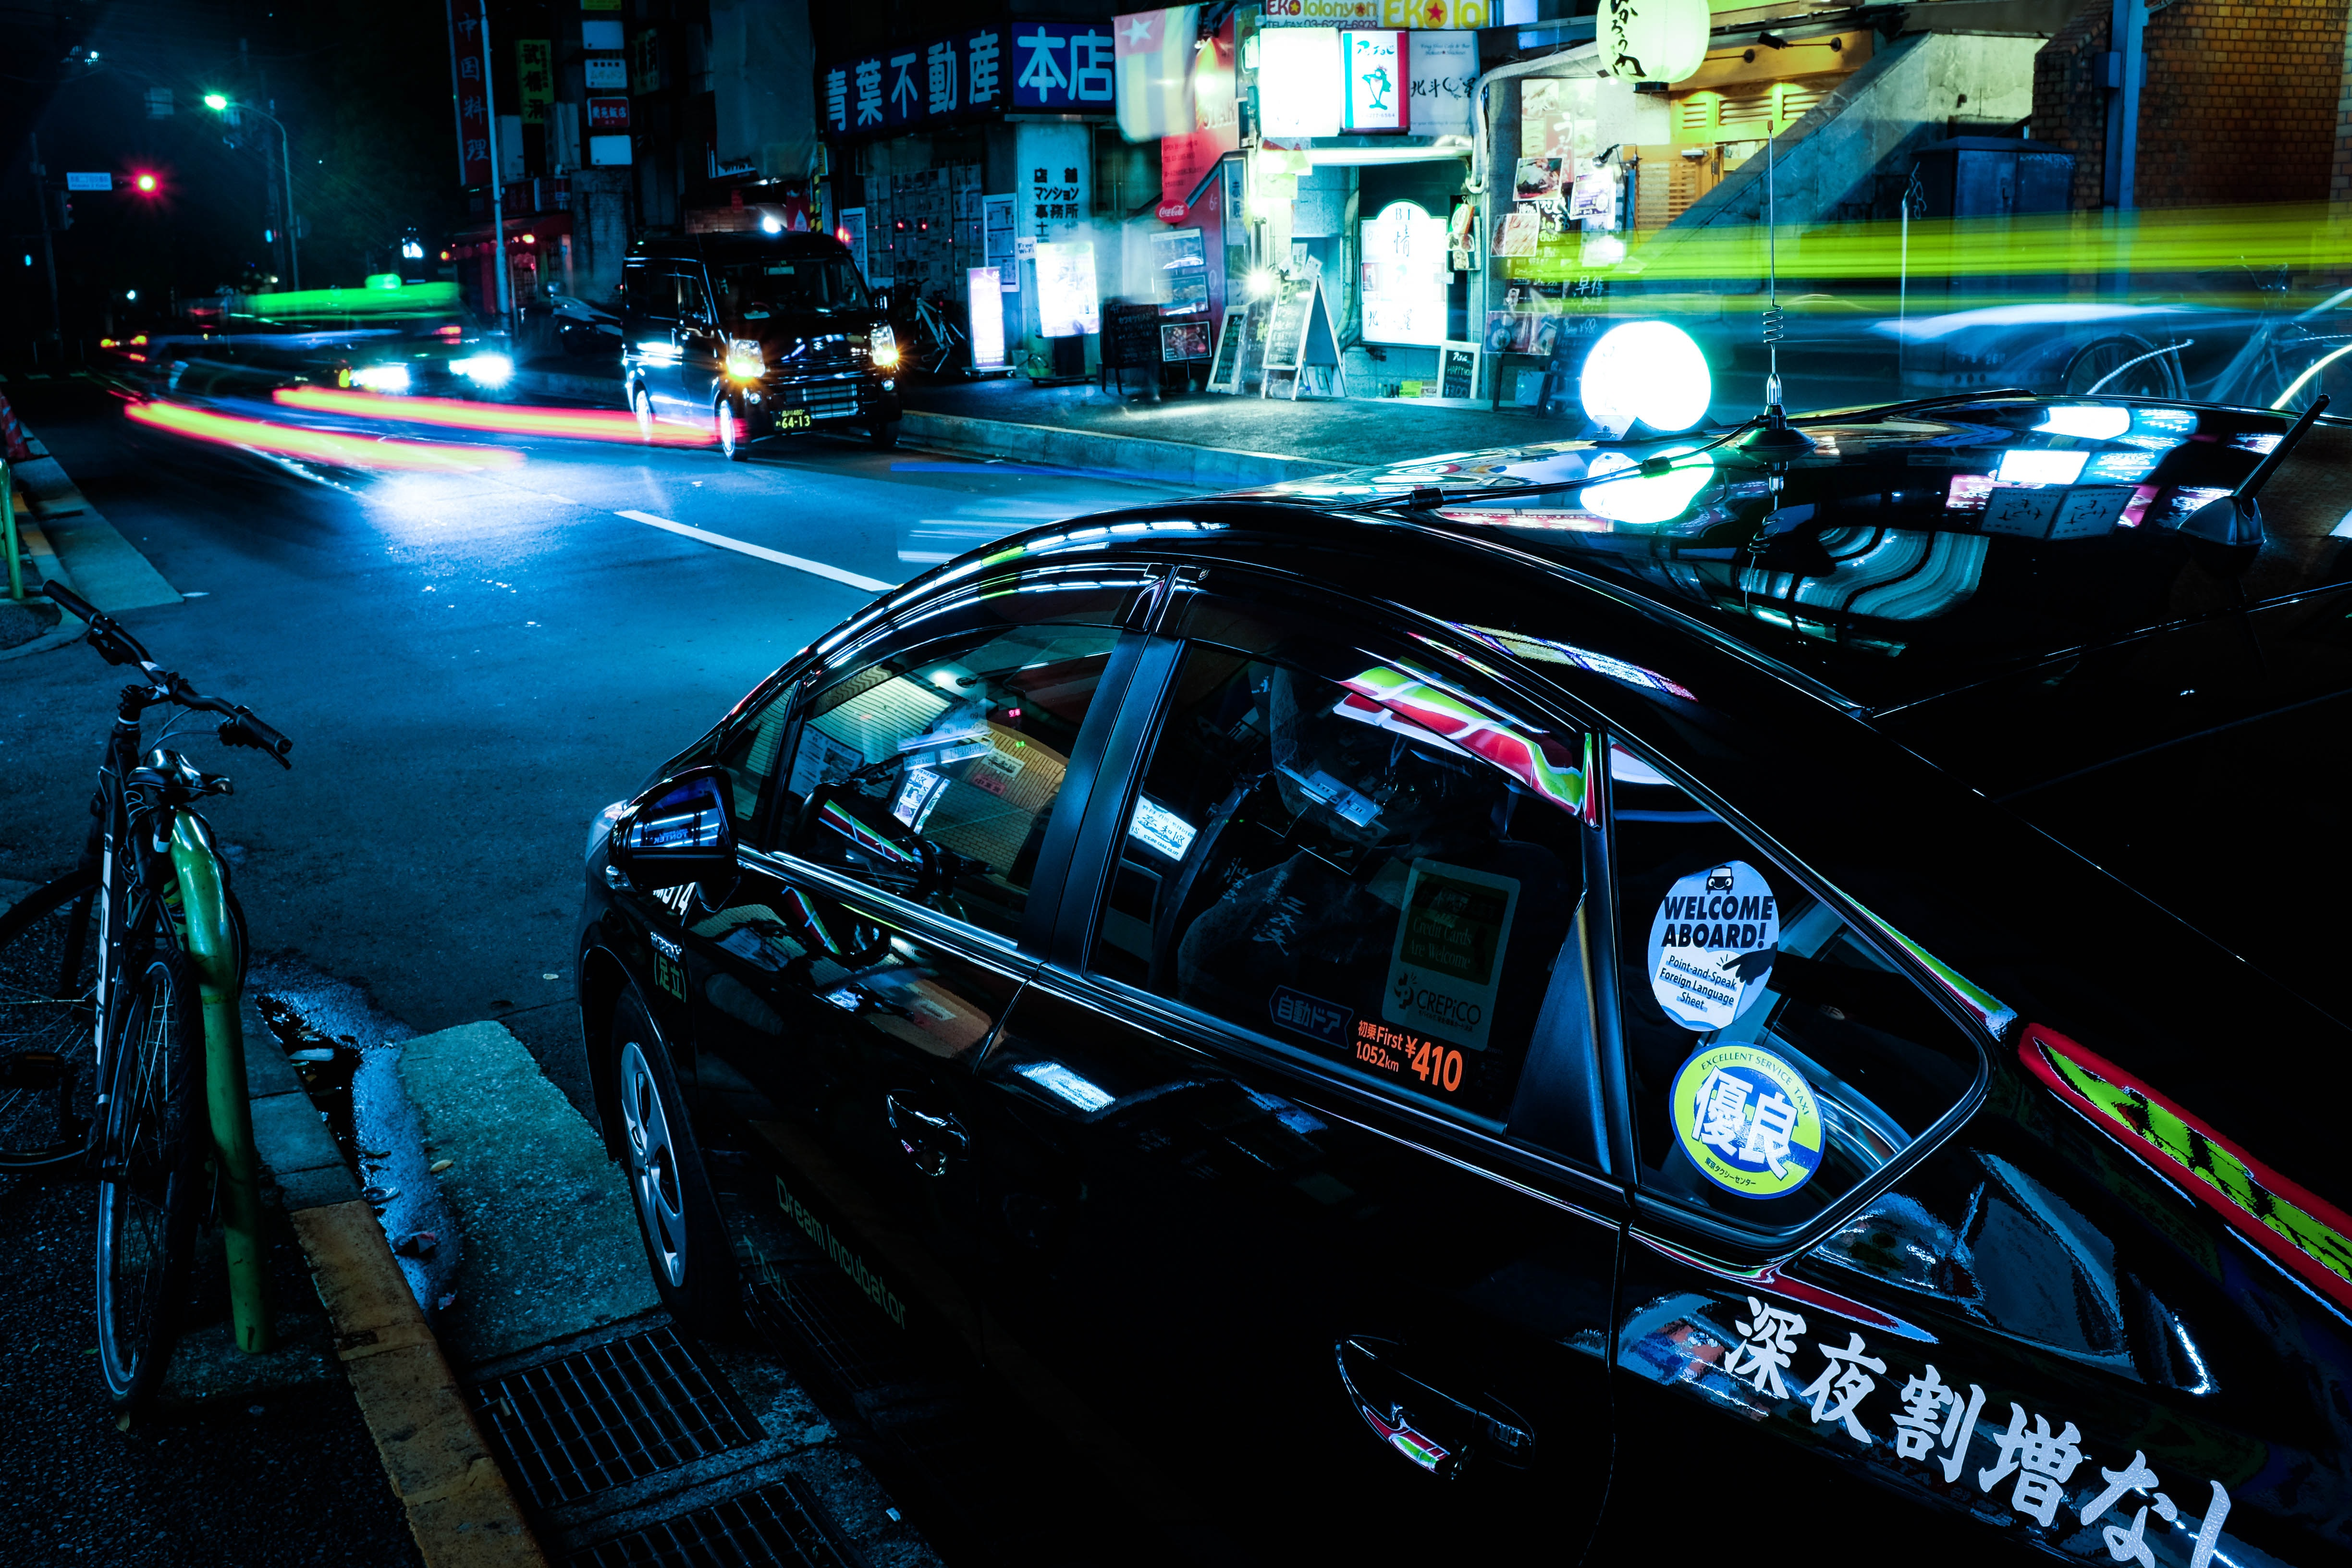 A taxi parked near city nightlife.